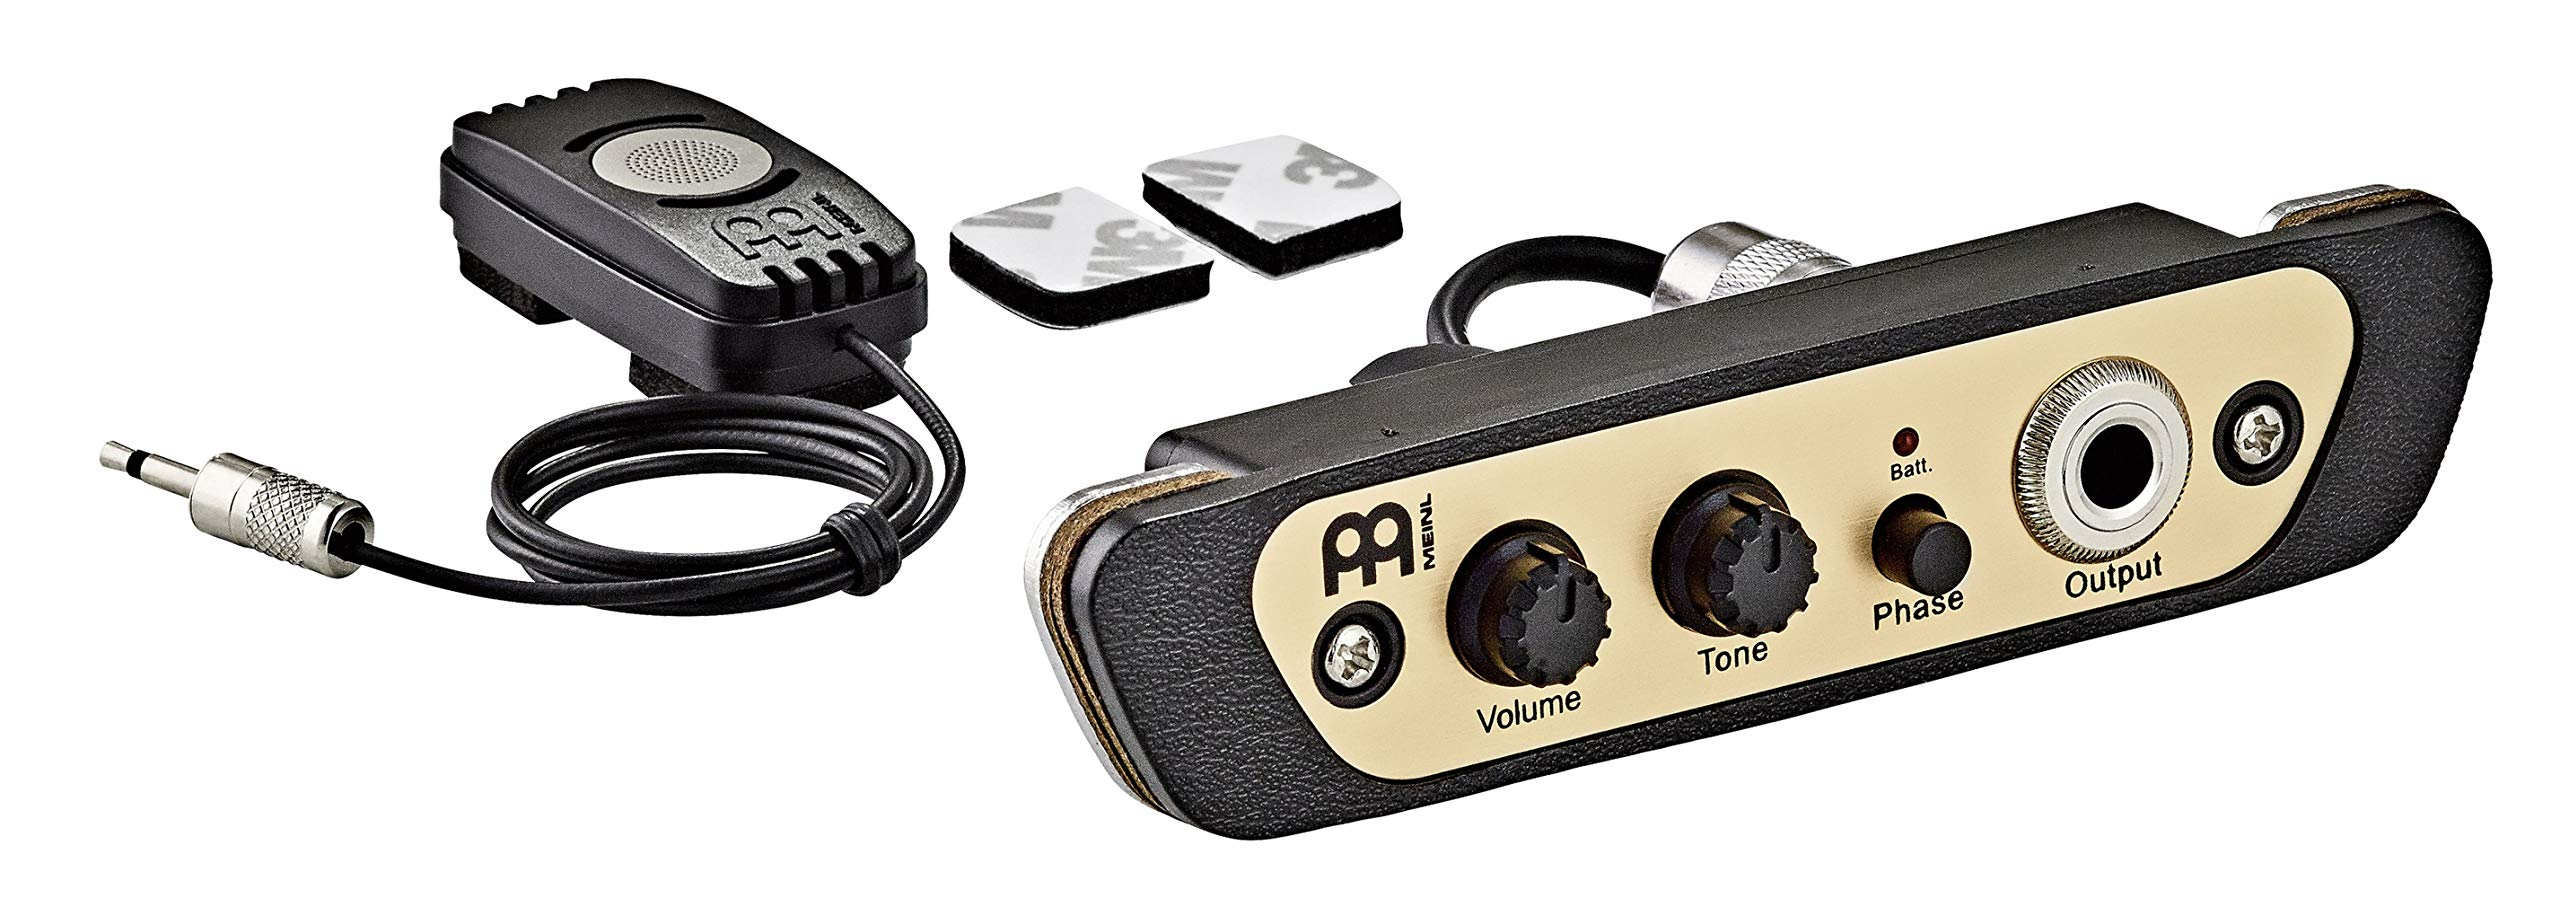 Meinl Percussion Cajon Box Drum Preamp/Pickup for Most Common Models, Eliminate Mic Stands and Get Crystal Clear Sounds, 2-YEAR WARRANTY (PA-CAJ) by Meinl Percussion